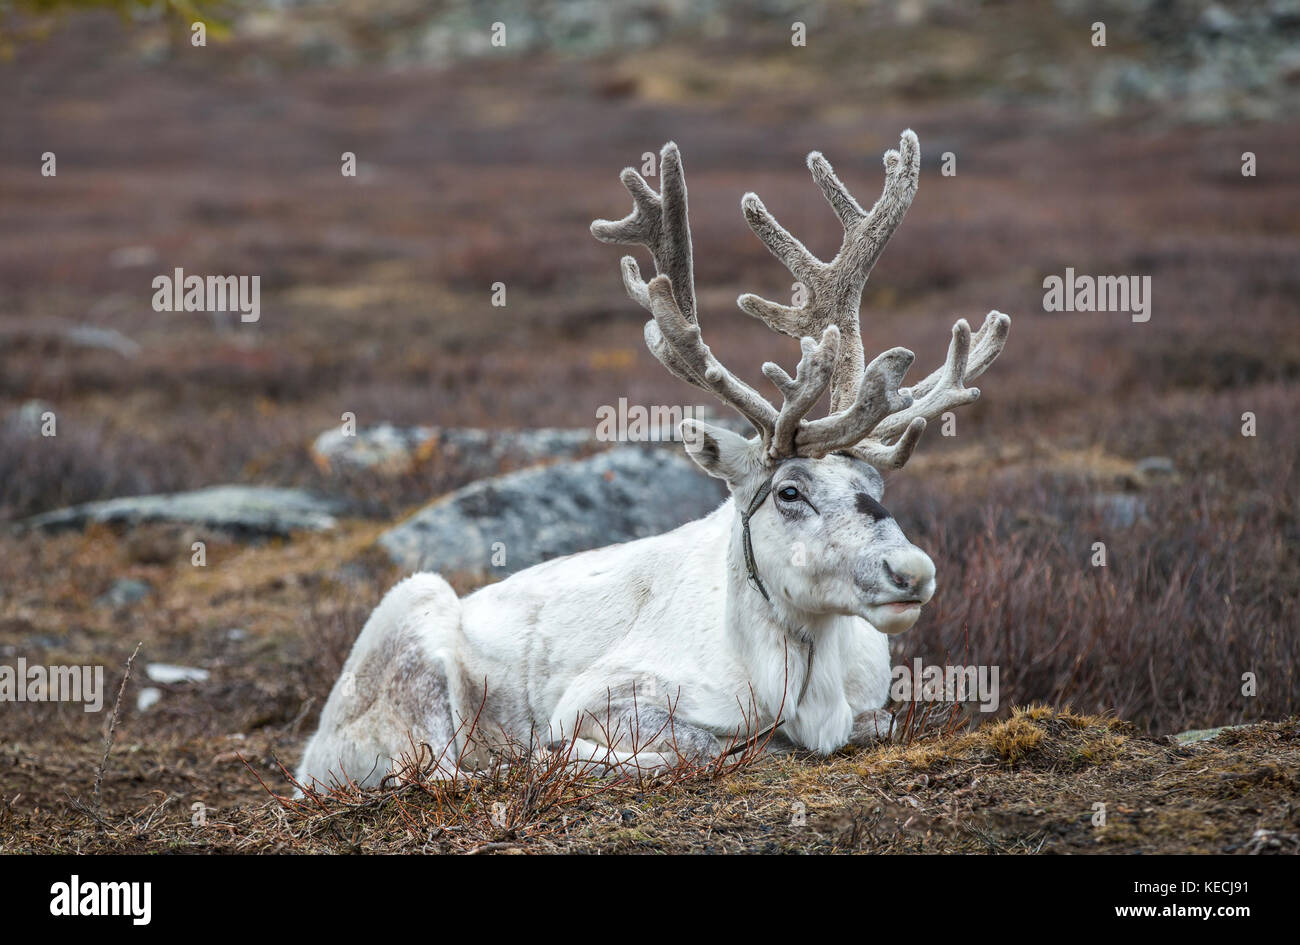 reindeer in a landscape of northern Mongolia - Stock Image